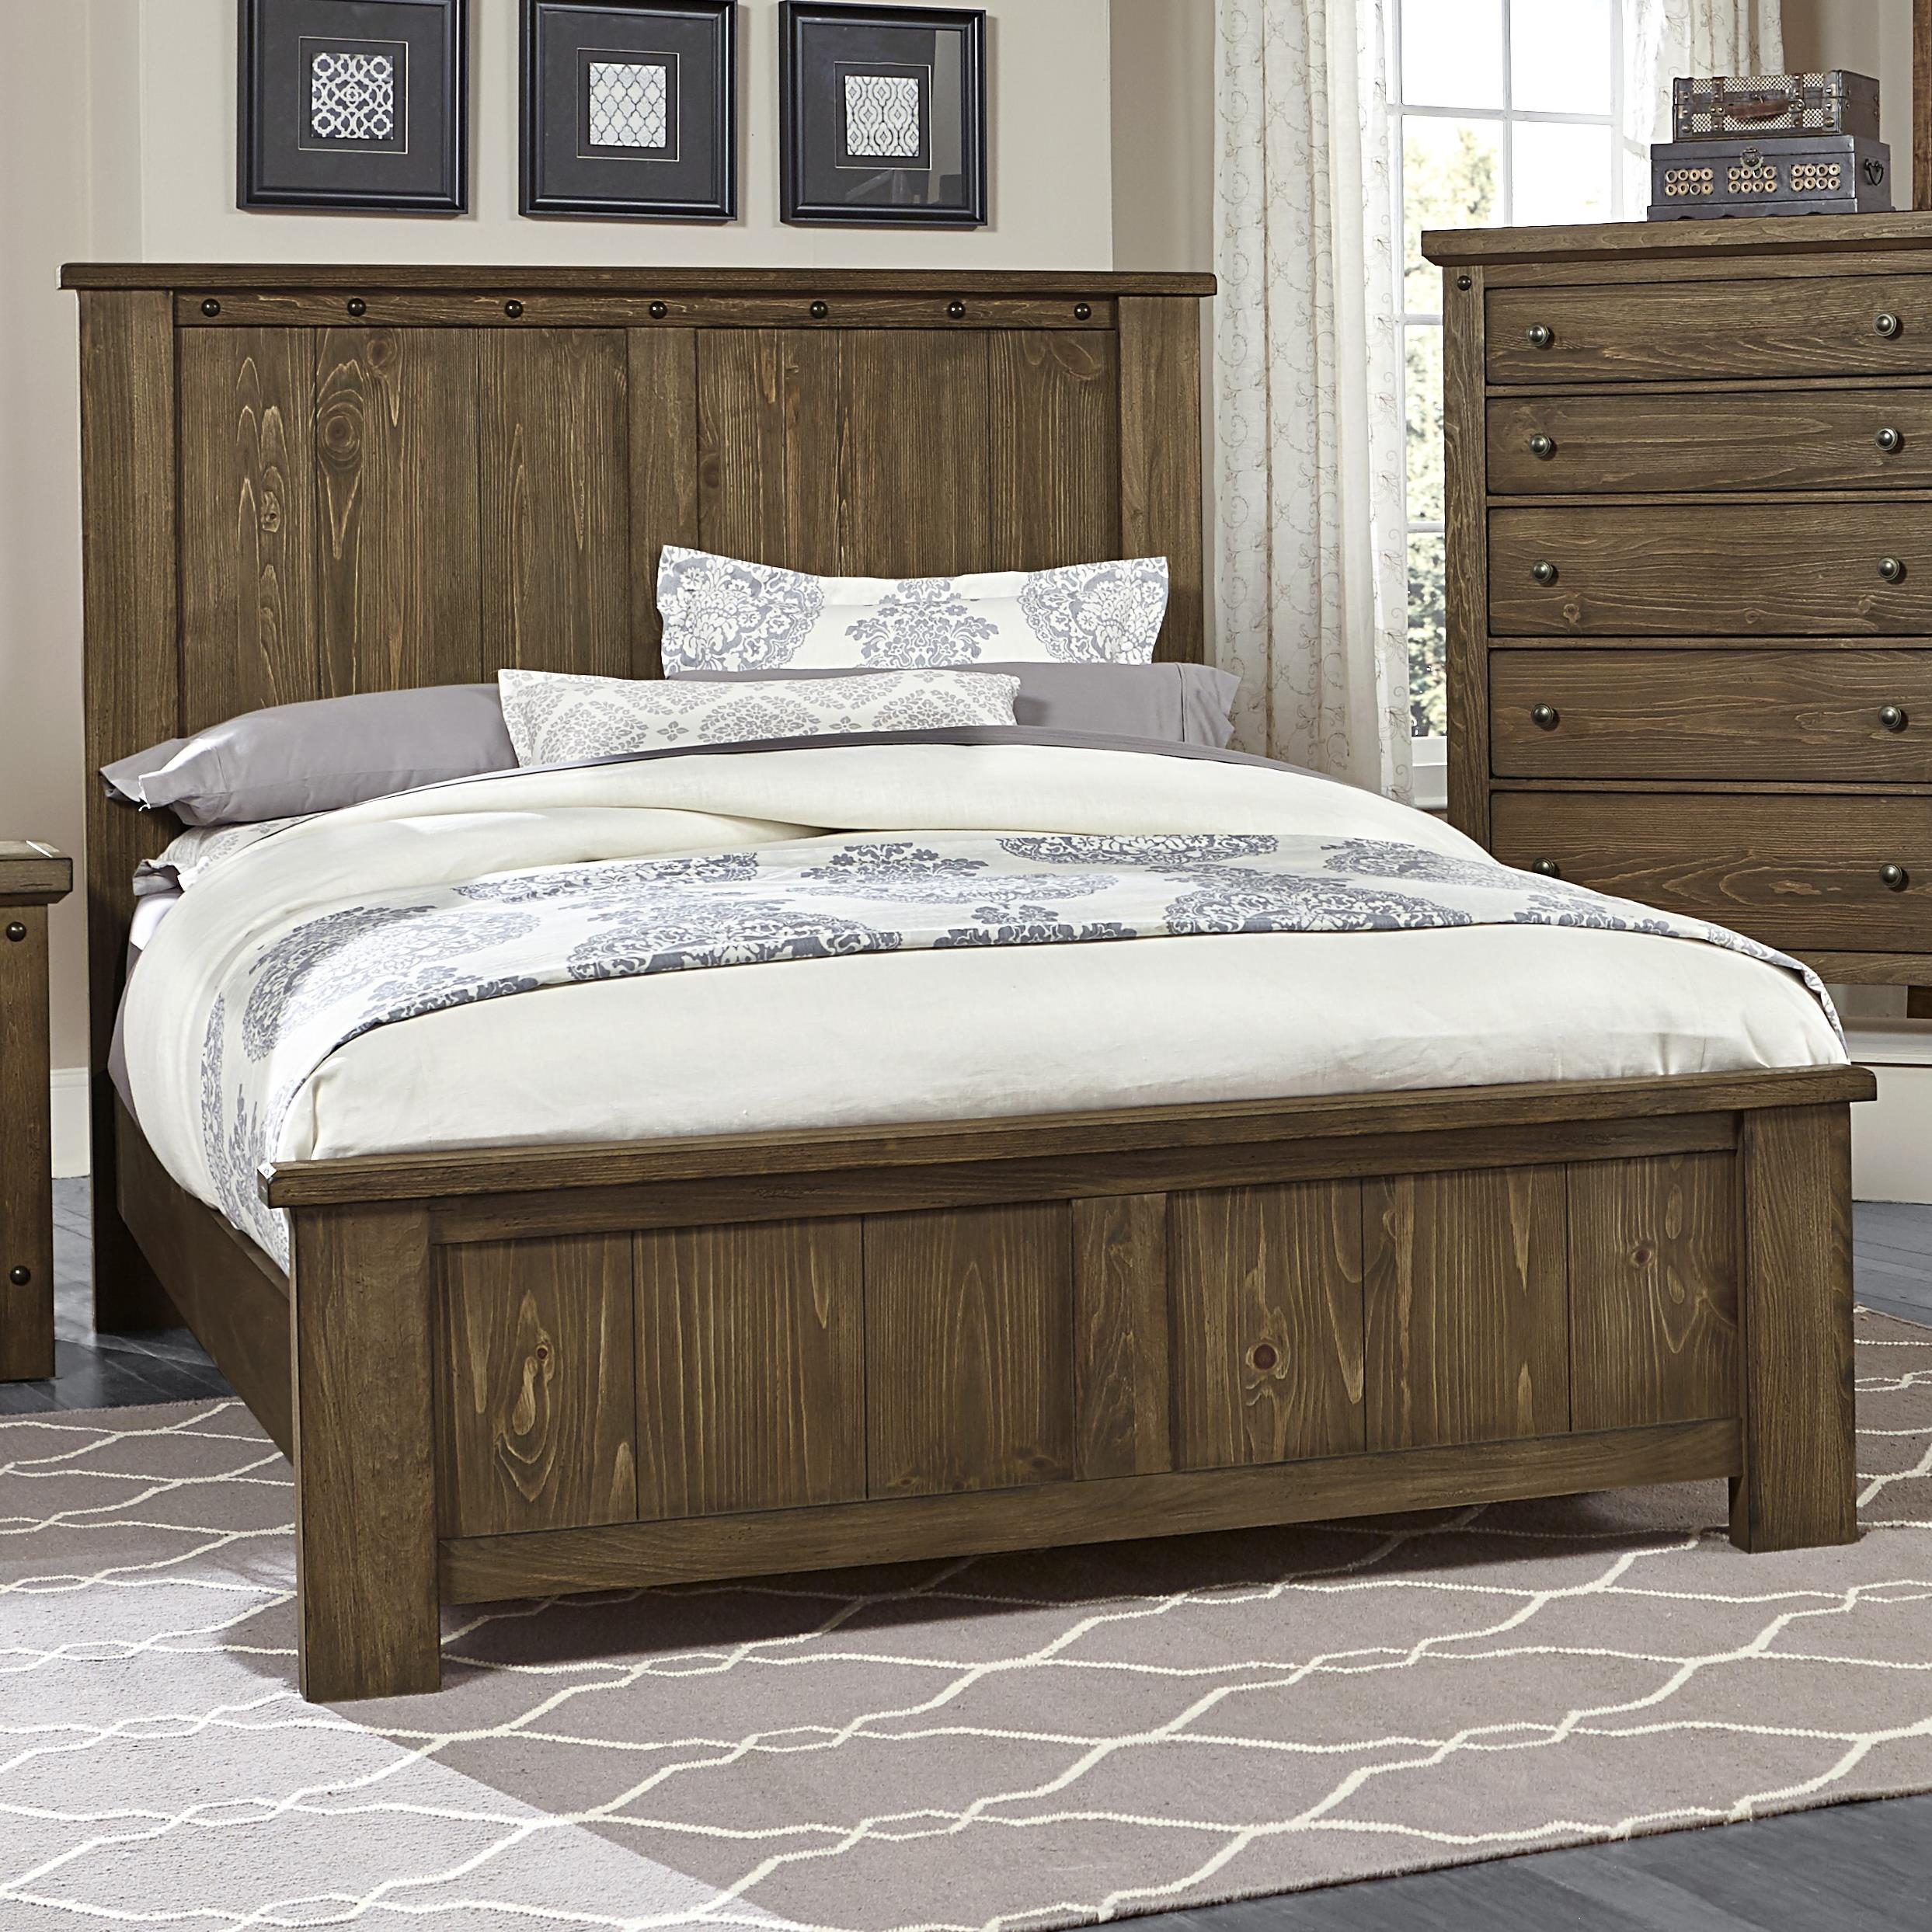 Vaughan Bassett Collaboration King Panel Bed - Item Number: 610-668+866+922+MS2